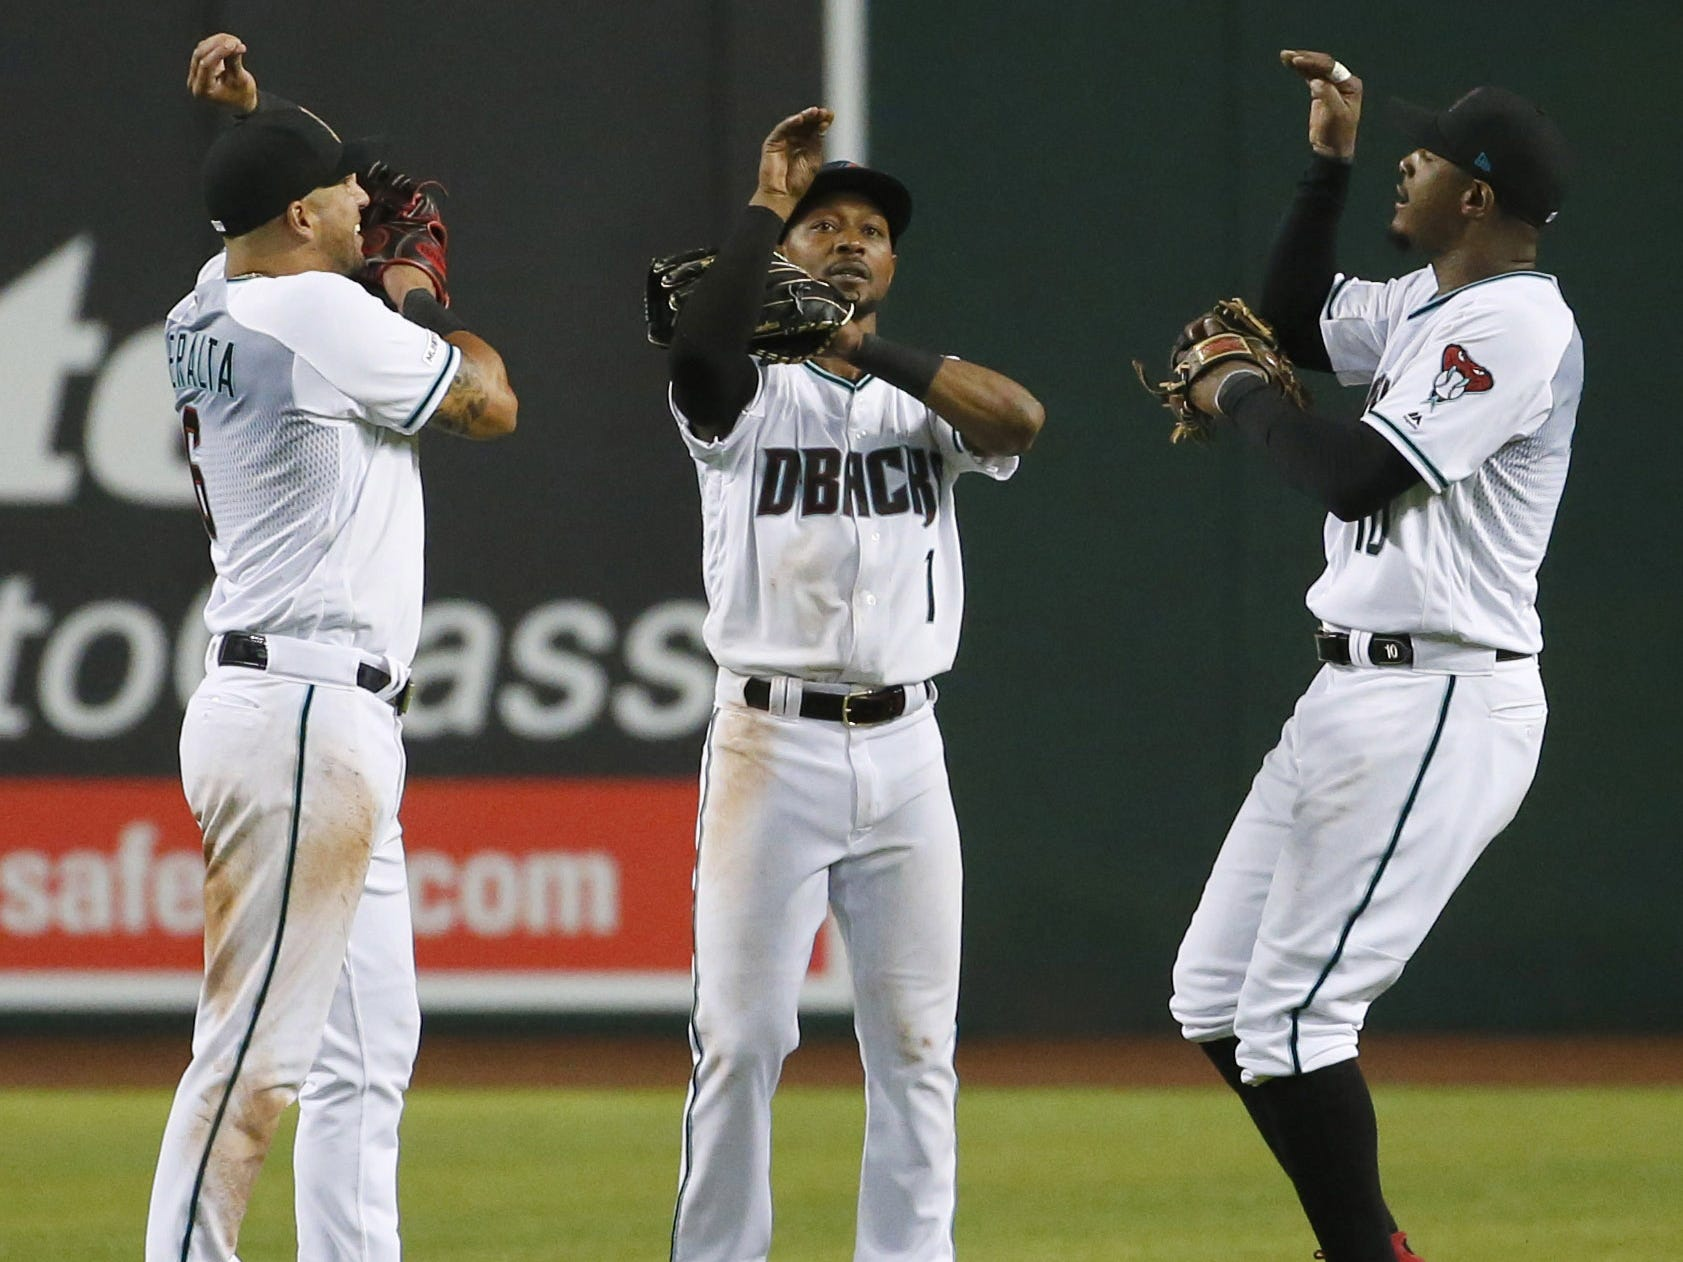 Arizona Diamondbacks right fielder David Peralta (6),  center fielder Jarrod Dyson (1)and  right fielder Adam Jones (10) celebrate winning Opening Day game 15-8 against Boston Red Sox at Chase Field in Phoenix on April 5.